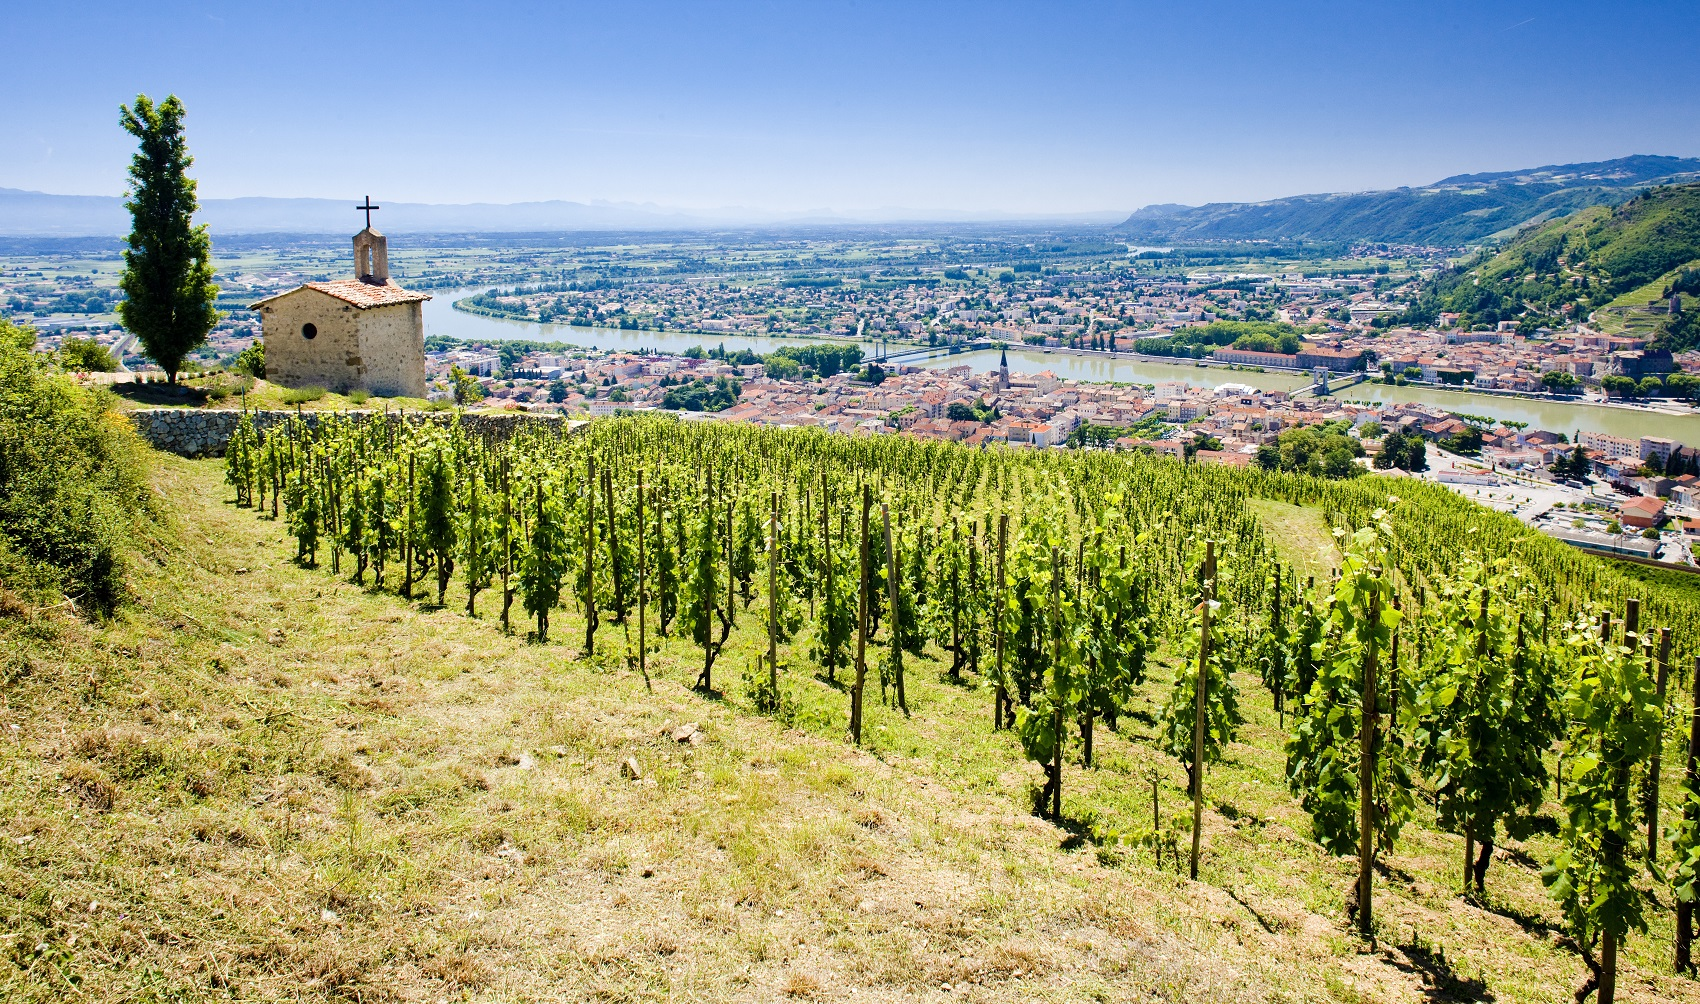 grand cru vineyard and Chapel of St. Christopher, L´Hermitage, Rhône-Alpes, France - by Richard Semik - Article by winegeographic.com